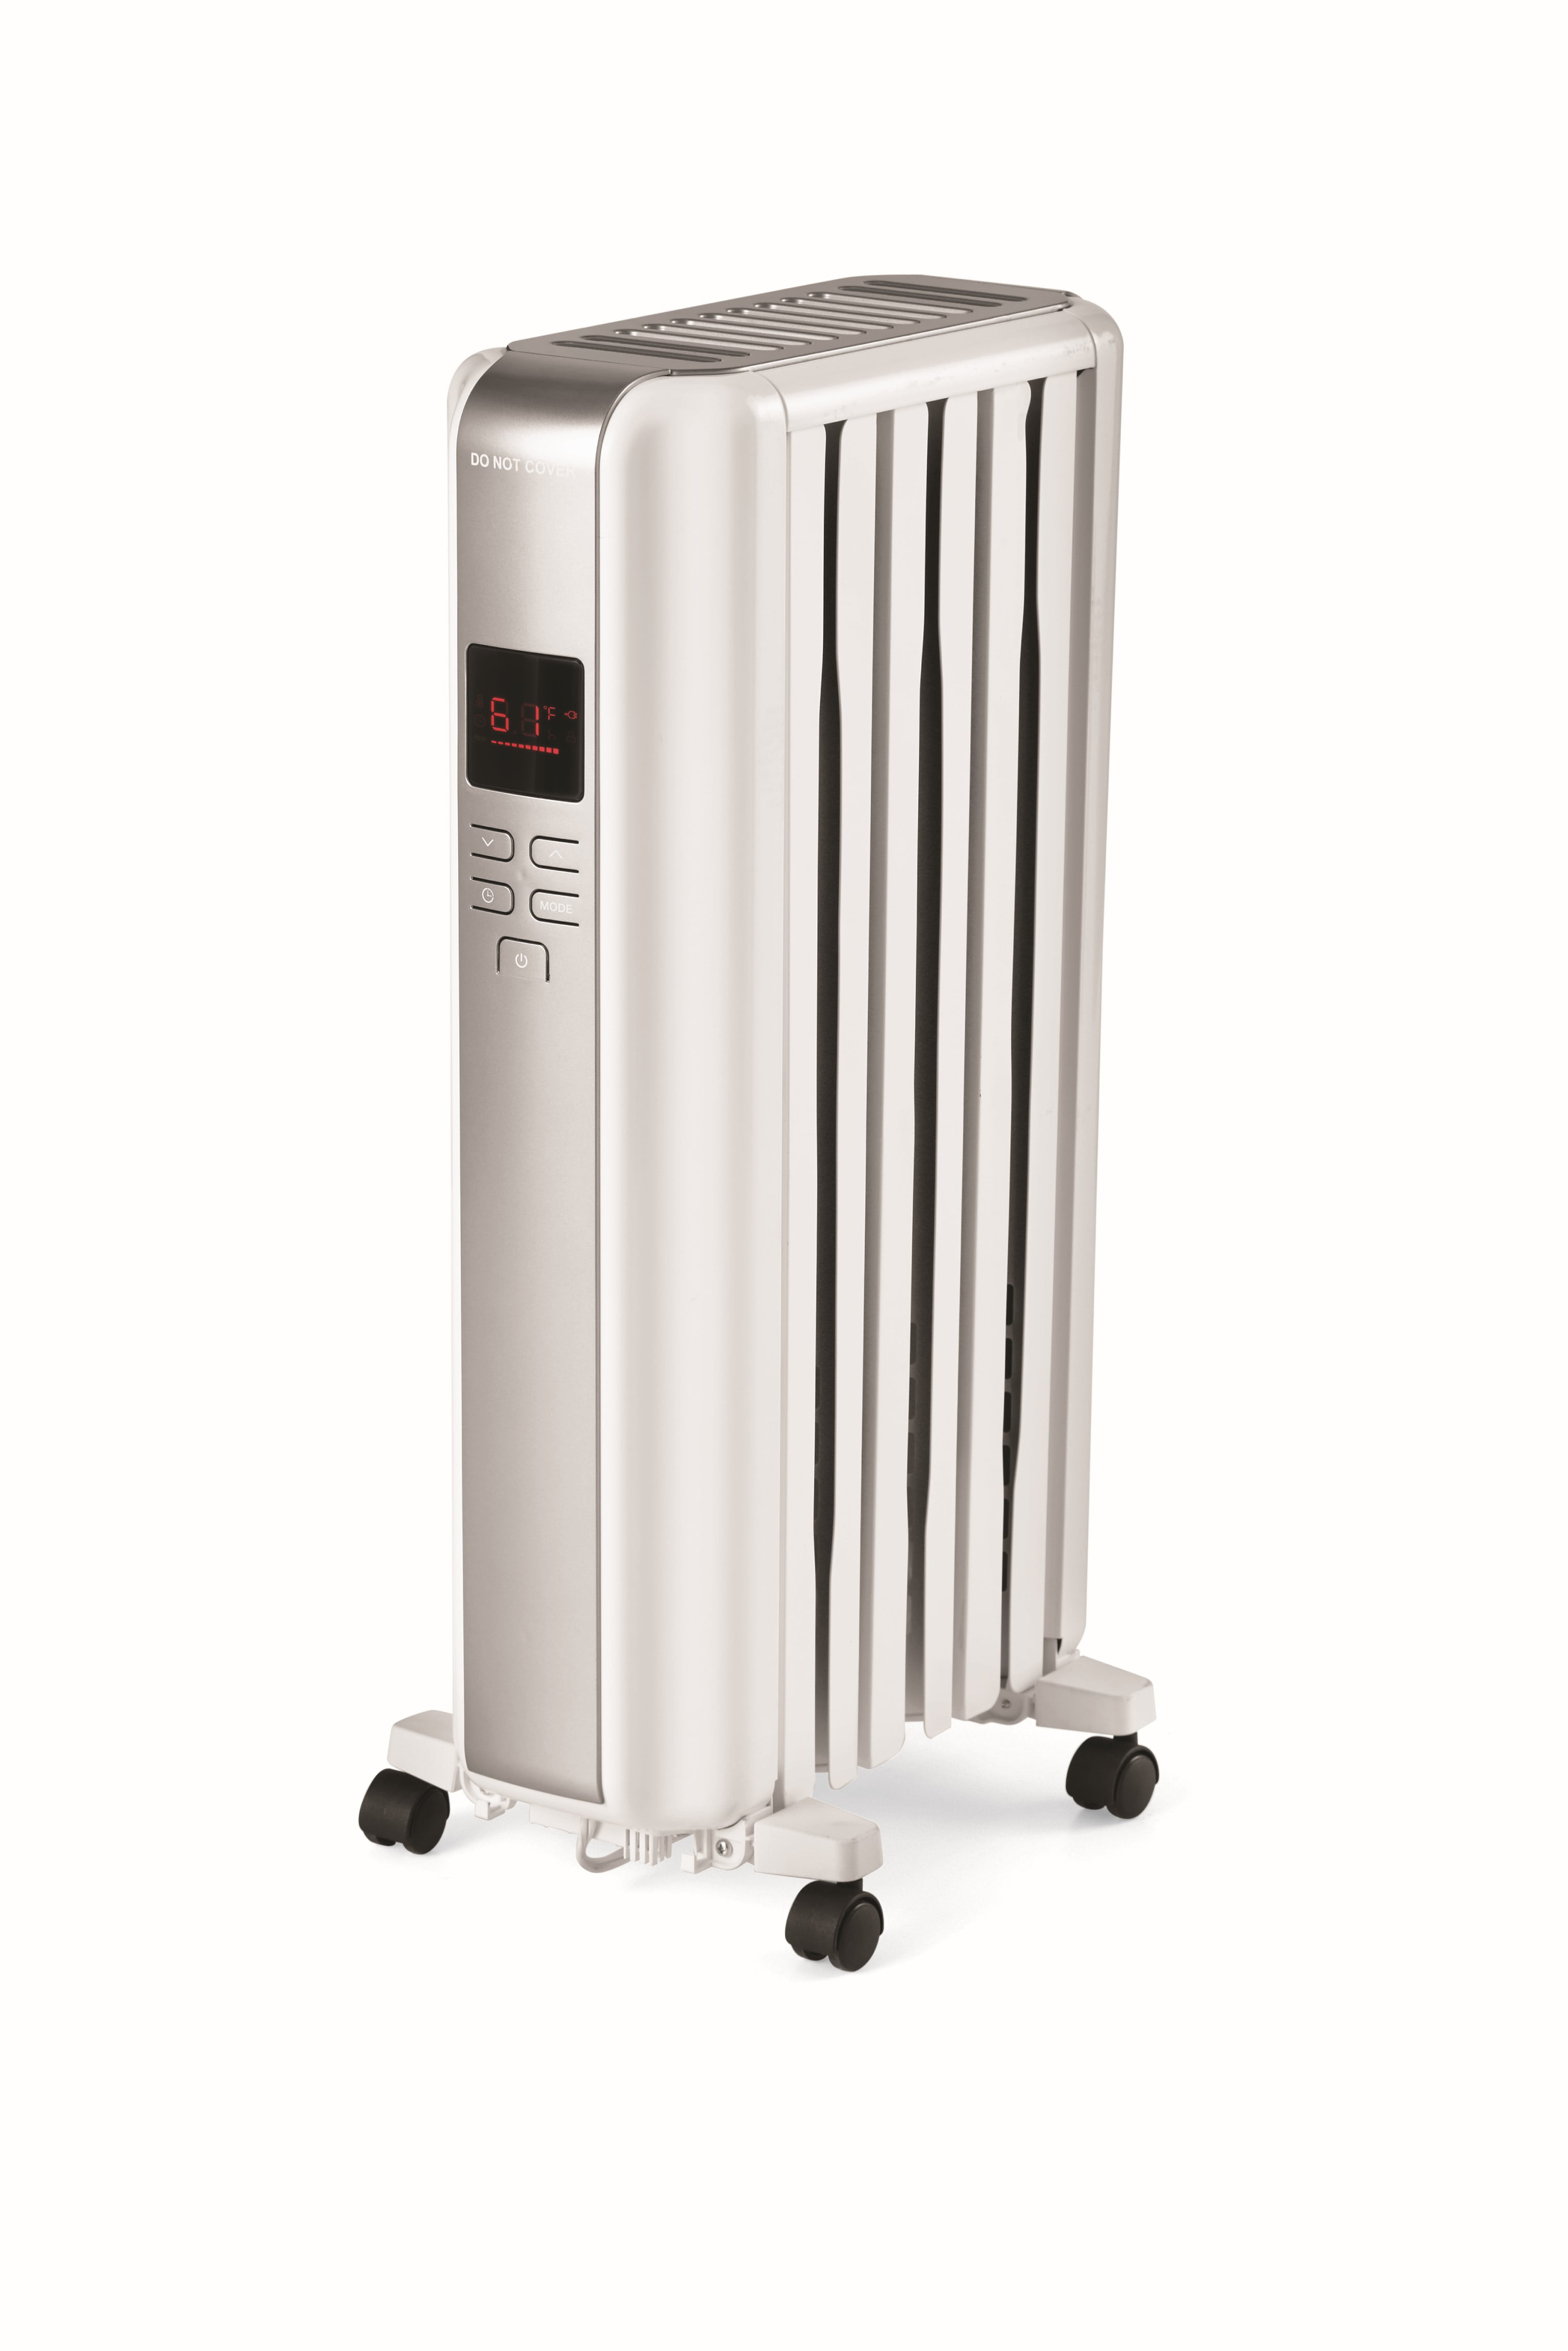 Mainstays Digital Radiator Heater, White, NY1506-18SRA - Walmart.com